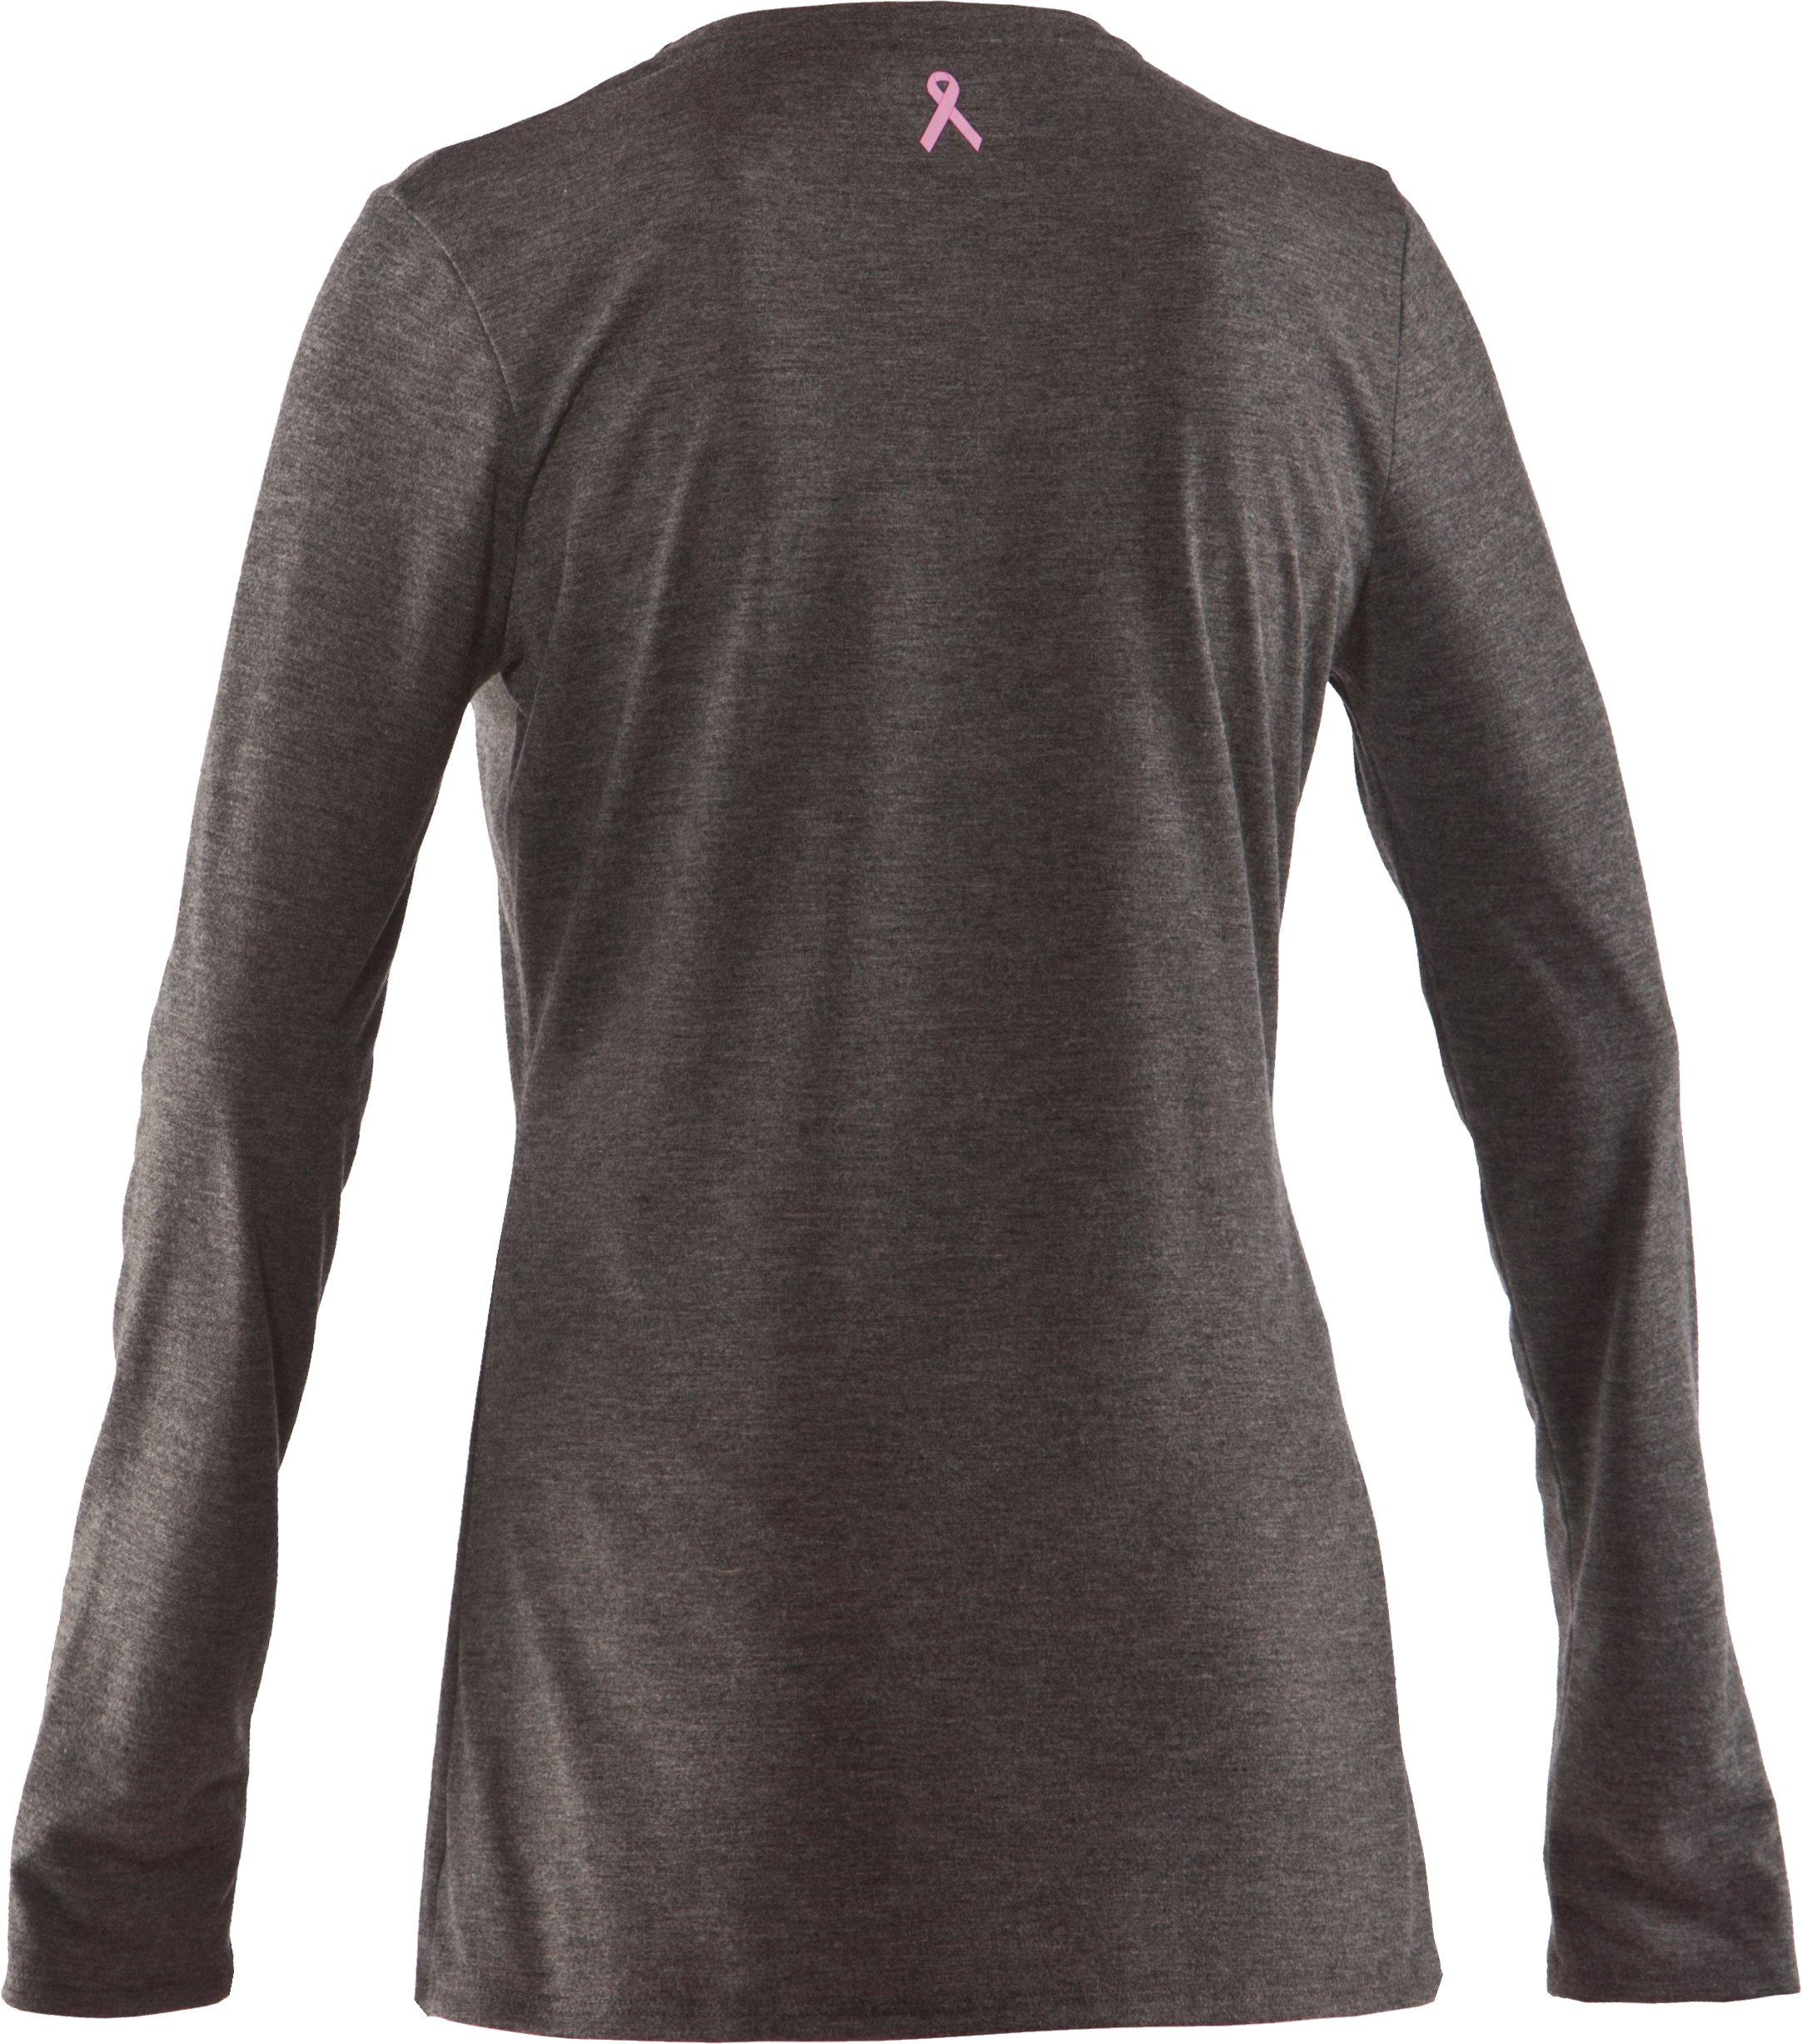 Women's PIP® I Race For Long Sleeve, Carbon Heather, undefined